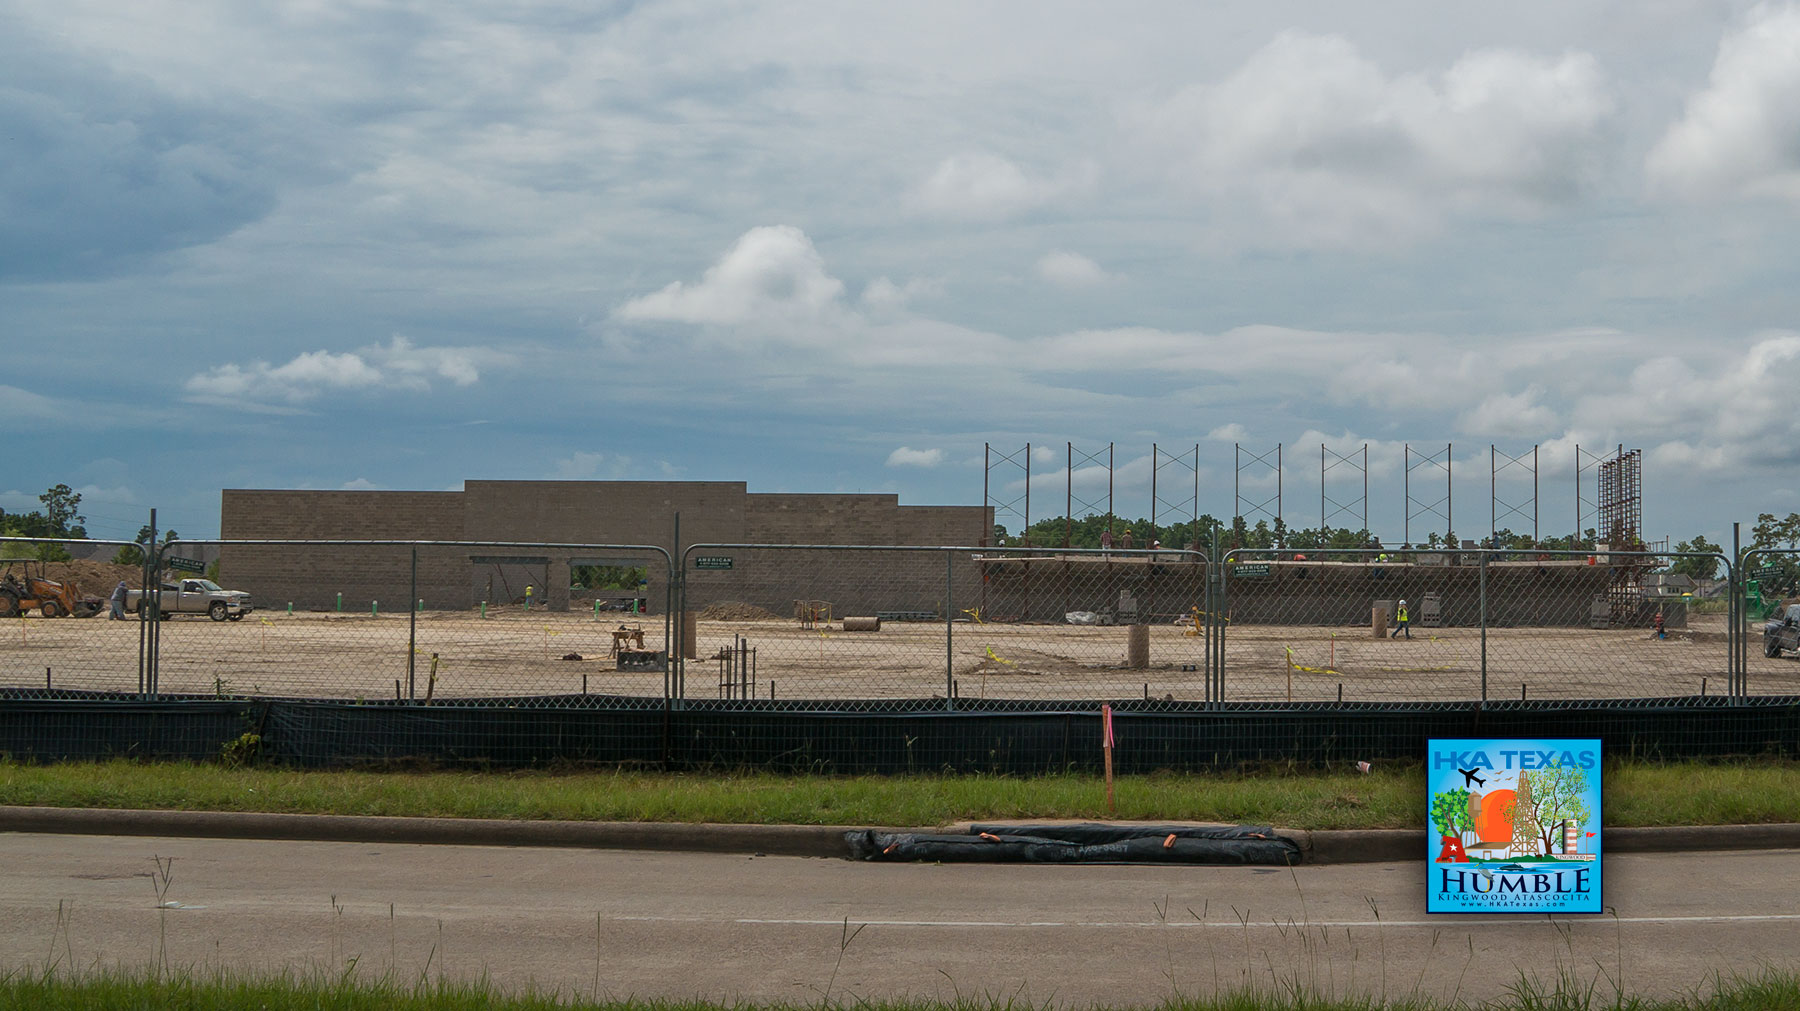 walmart neighborhood market to open in atascocita hka texas photos from 8 28 2014